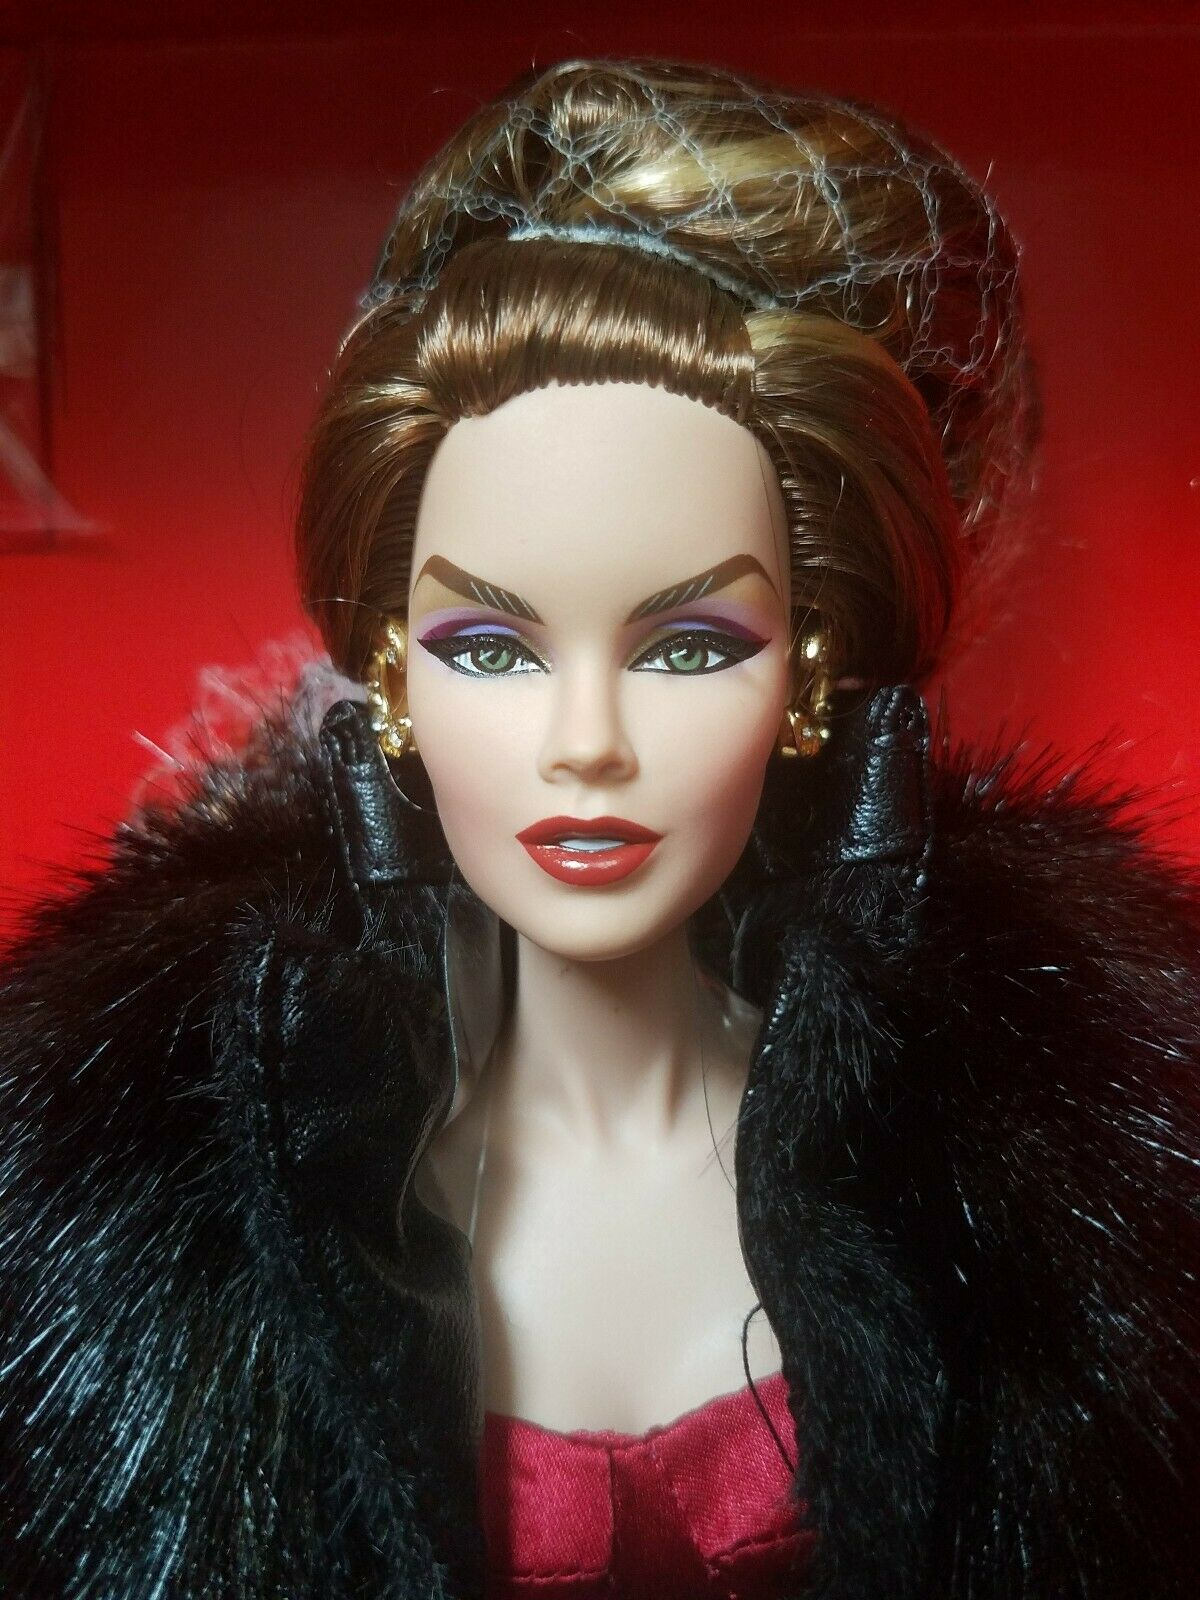 NRFB BEAST NU FANTASY COLLECTION FASHION ROYALTY INTEGRITY Doll